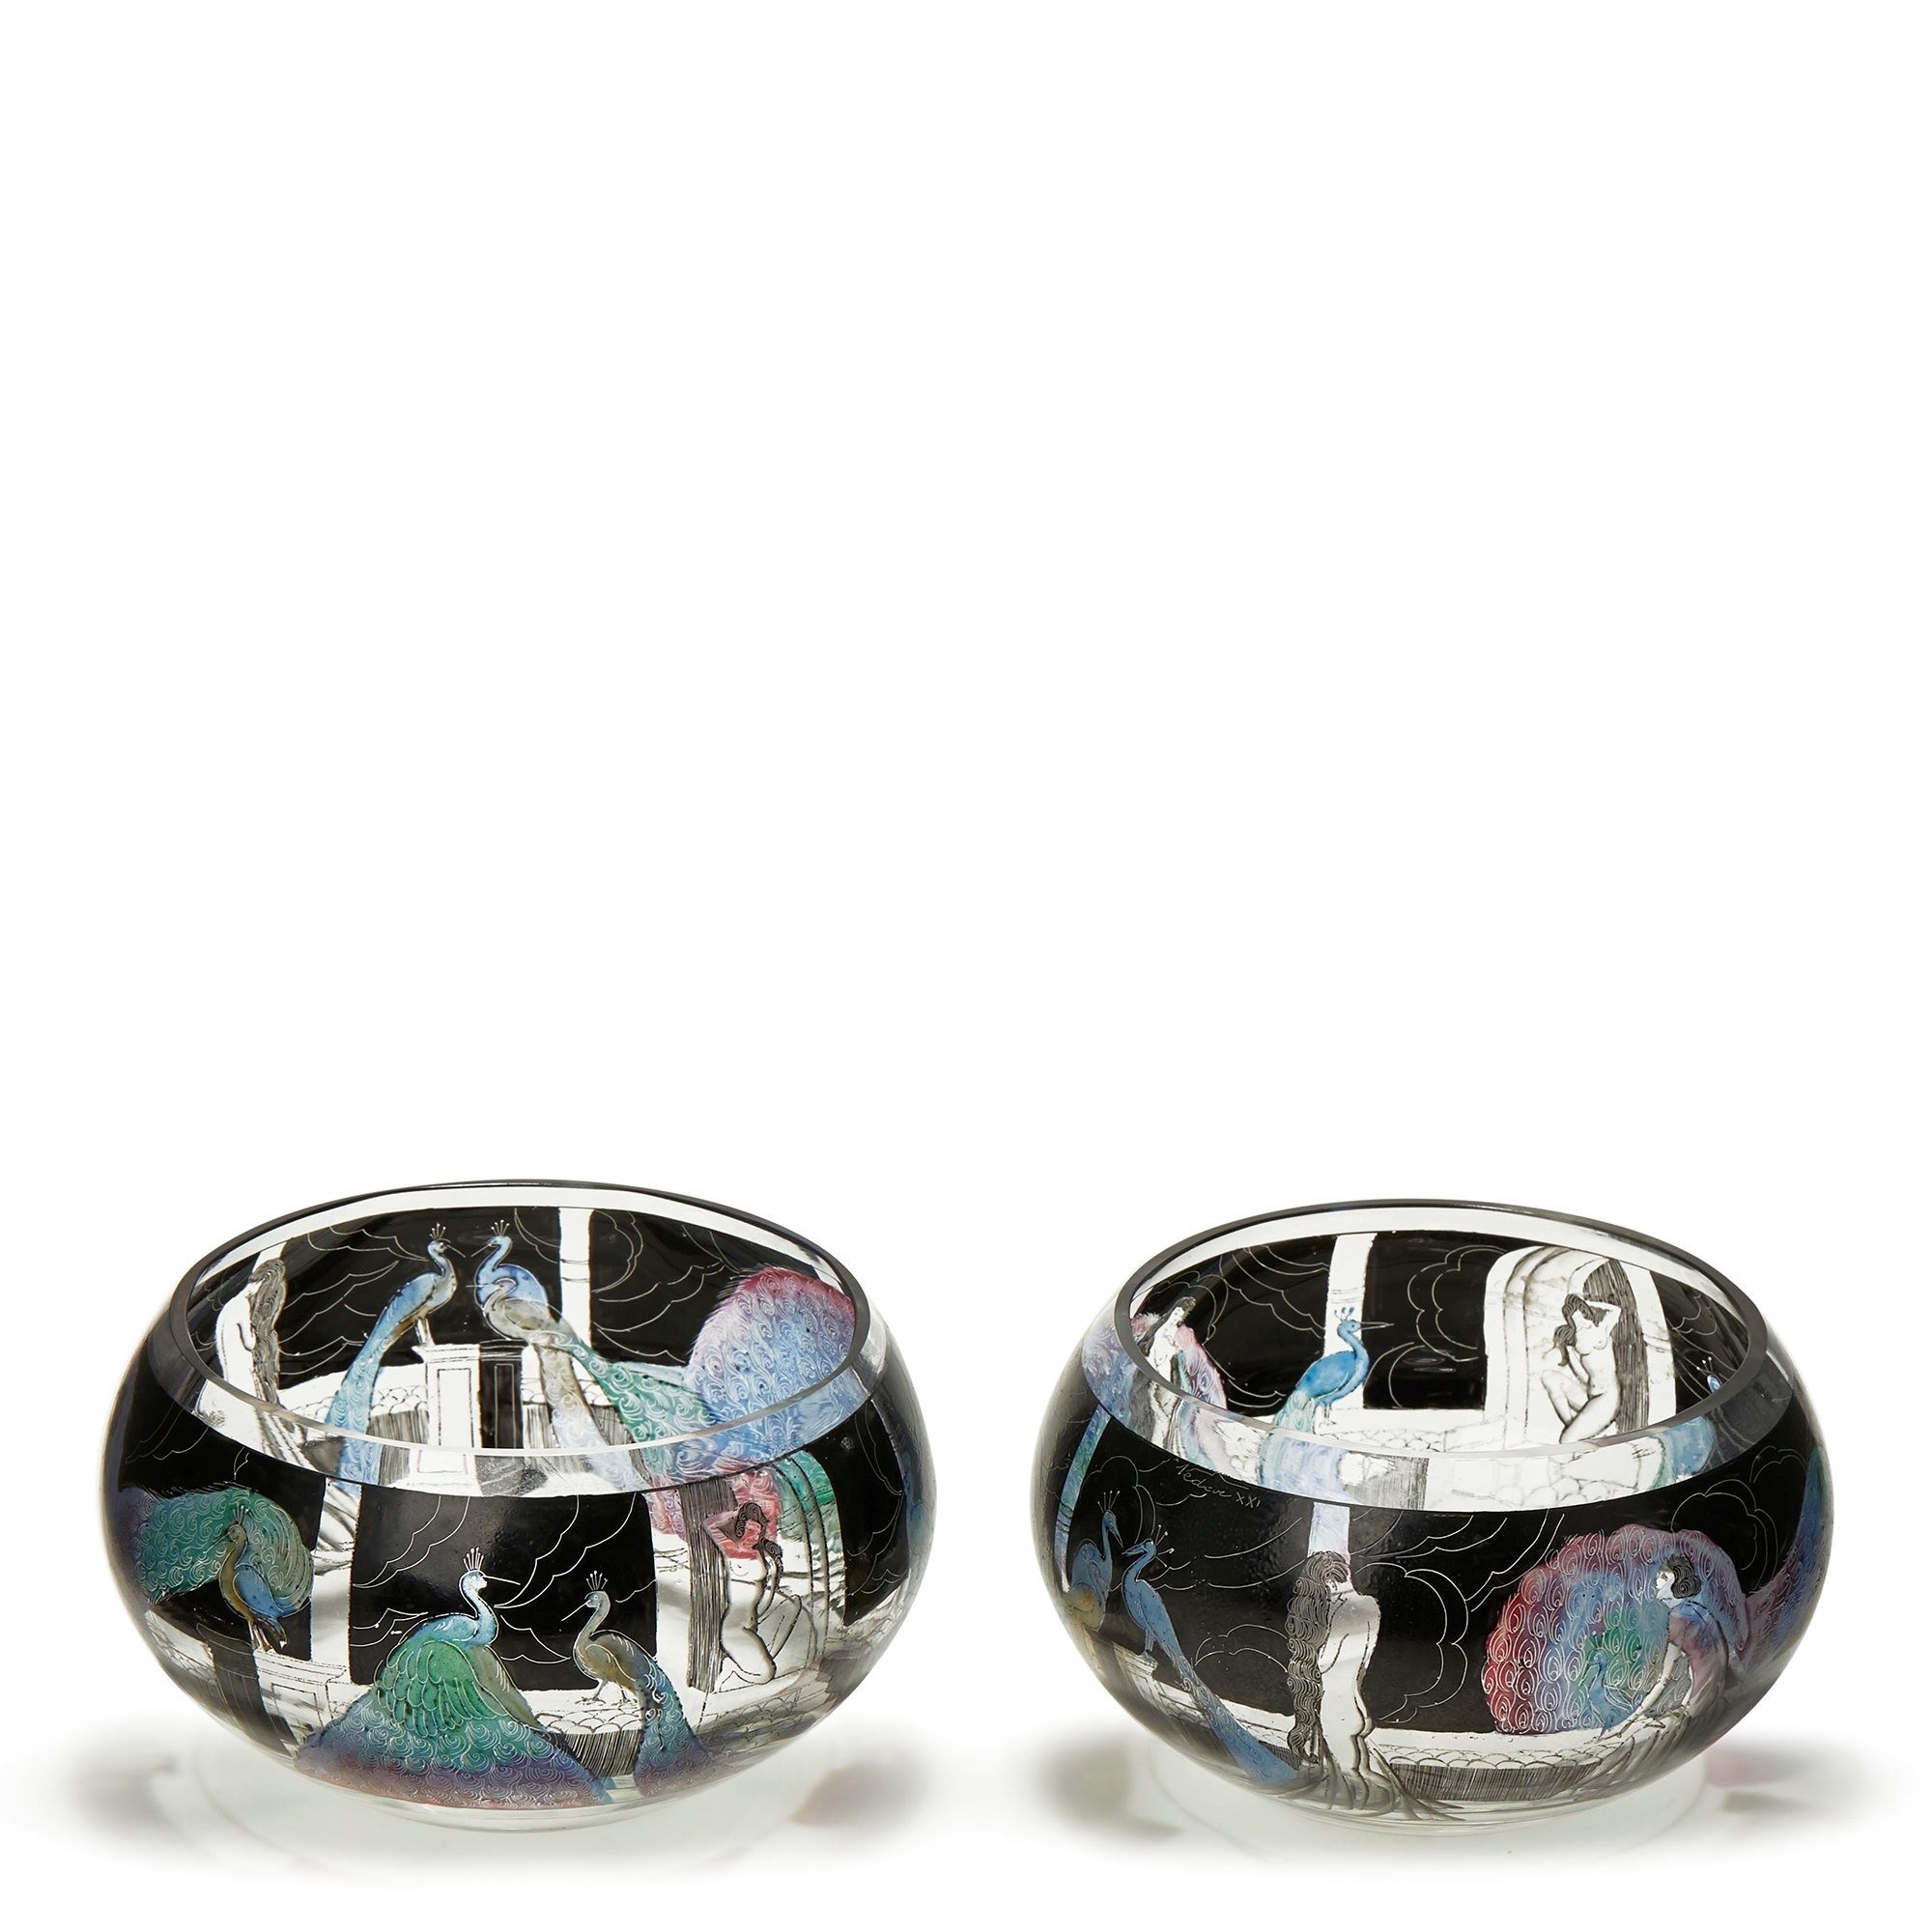 PAIR ITALIAN ART DECO VETRI D'ARTE ENAMELED GLASS BOWLS Circa 1925-1933